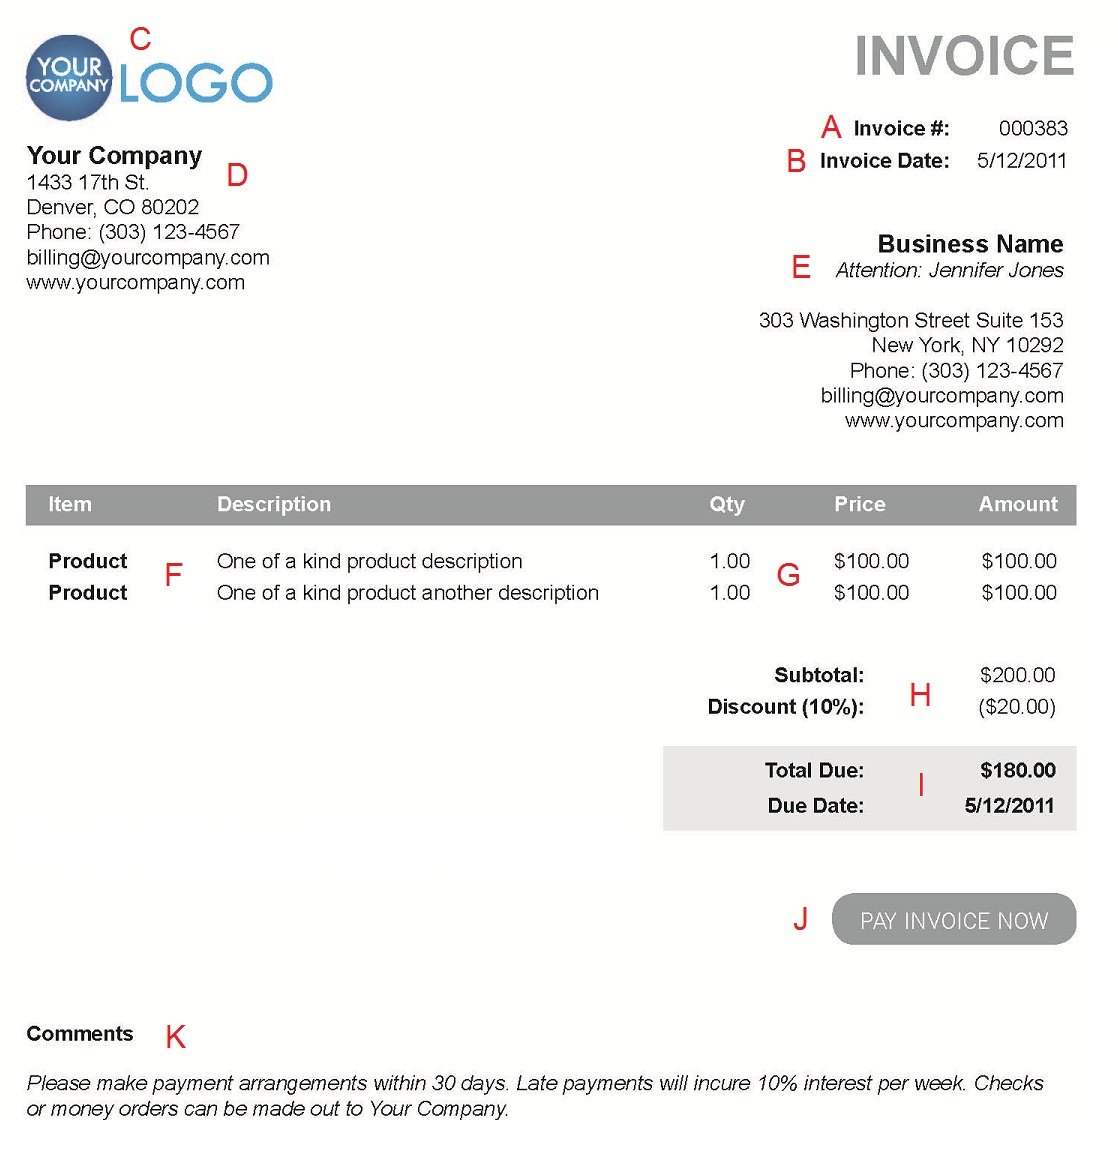 Usdgus  Unusual The  Different Sections Of An Electronic Payment Invoice With Entrancing A  With Astonishing Vtiger Invoice Template Also Customs Invoice Form In Addition Excel Invoice Template With Database And Commercial Invoice Packing List As Well As Blank Proforma Invoice Template Additionally How To Determine Invoice Price On A New Car From Paysimplecom With Usdgus  Entrancing The  Different Sections Of An Electronic Payment Invoice With Astonishing A  And Unusual Vtiger Invoice Template Also Customs Invoice Form In Addition Excel Invoice Template With Database From Paysimplecom